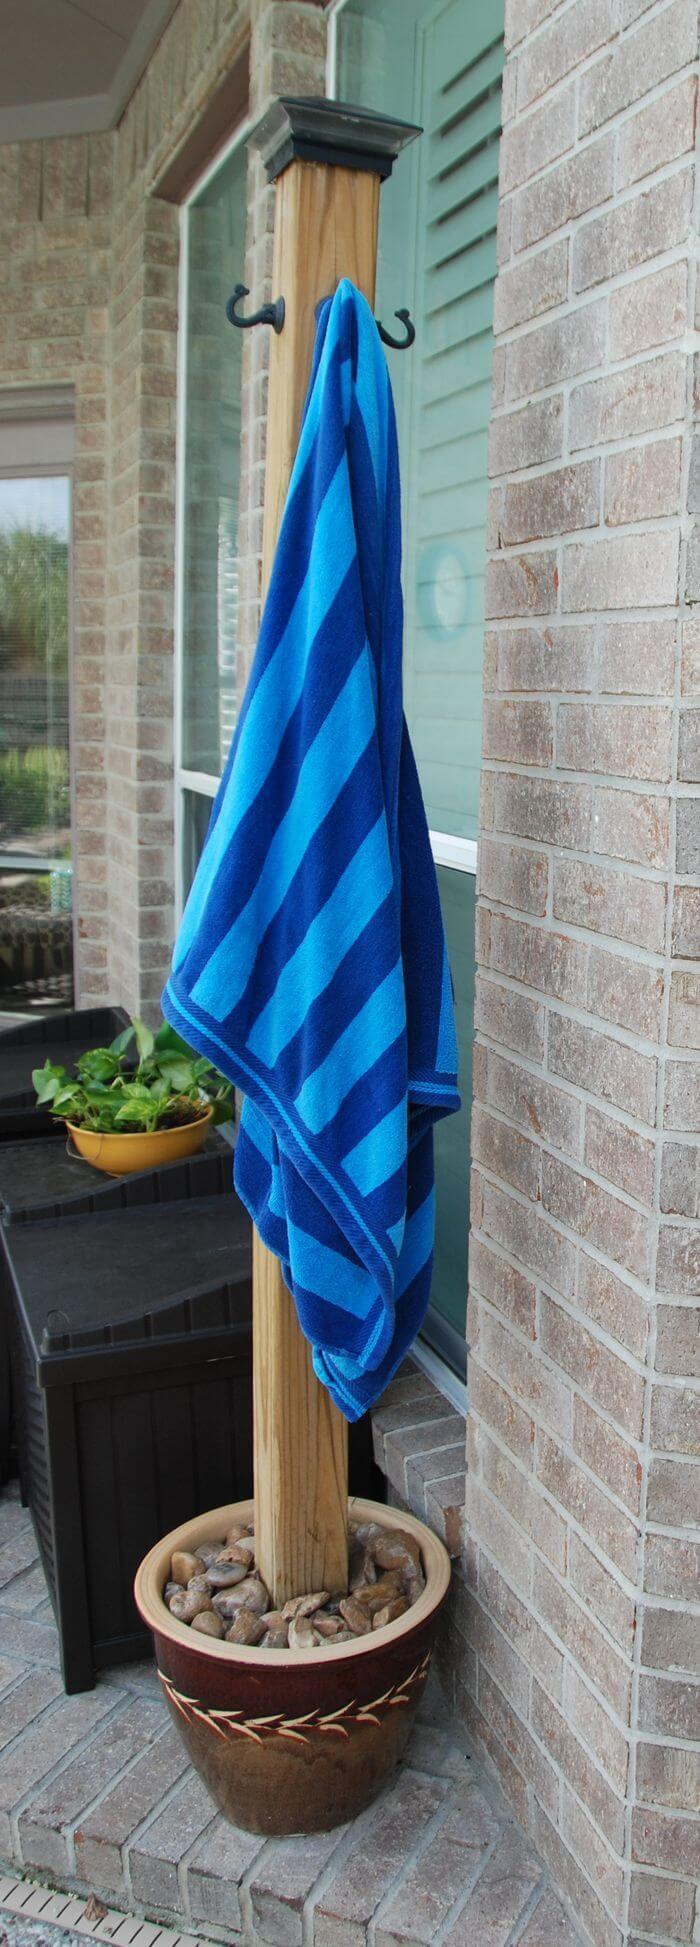 Wooden Poolside Towel Hanging Post